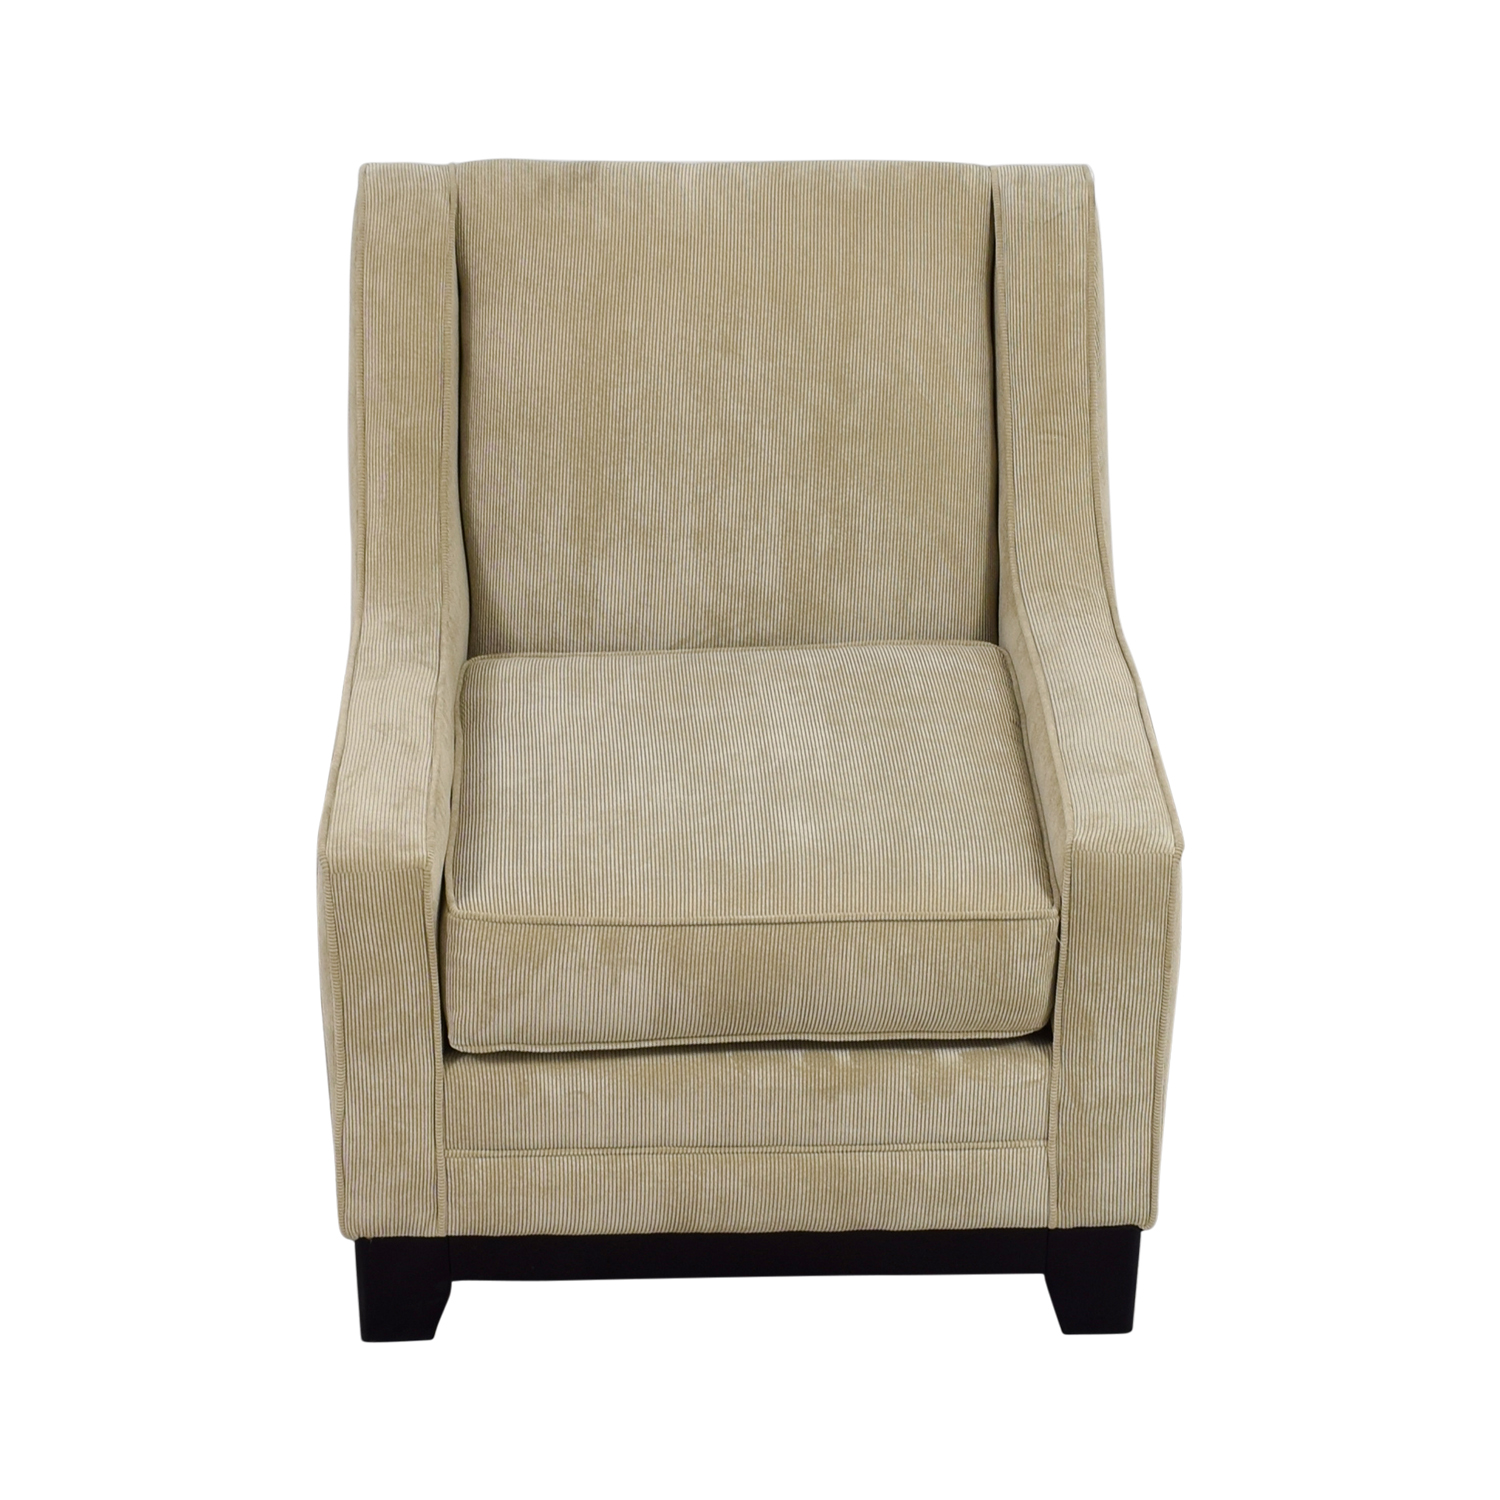 buy May Furniture Tan Corduroy Accent Chair May Furniture